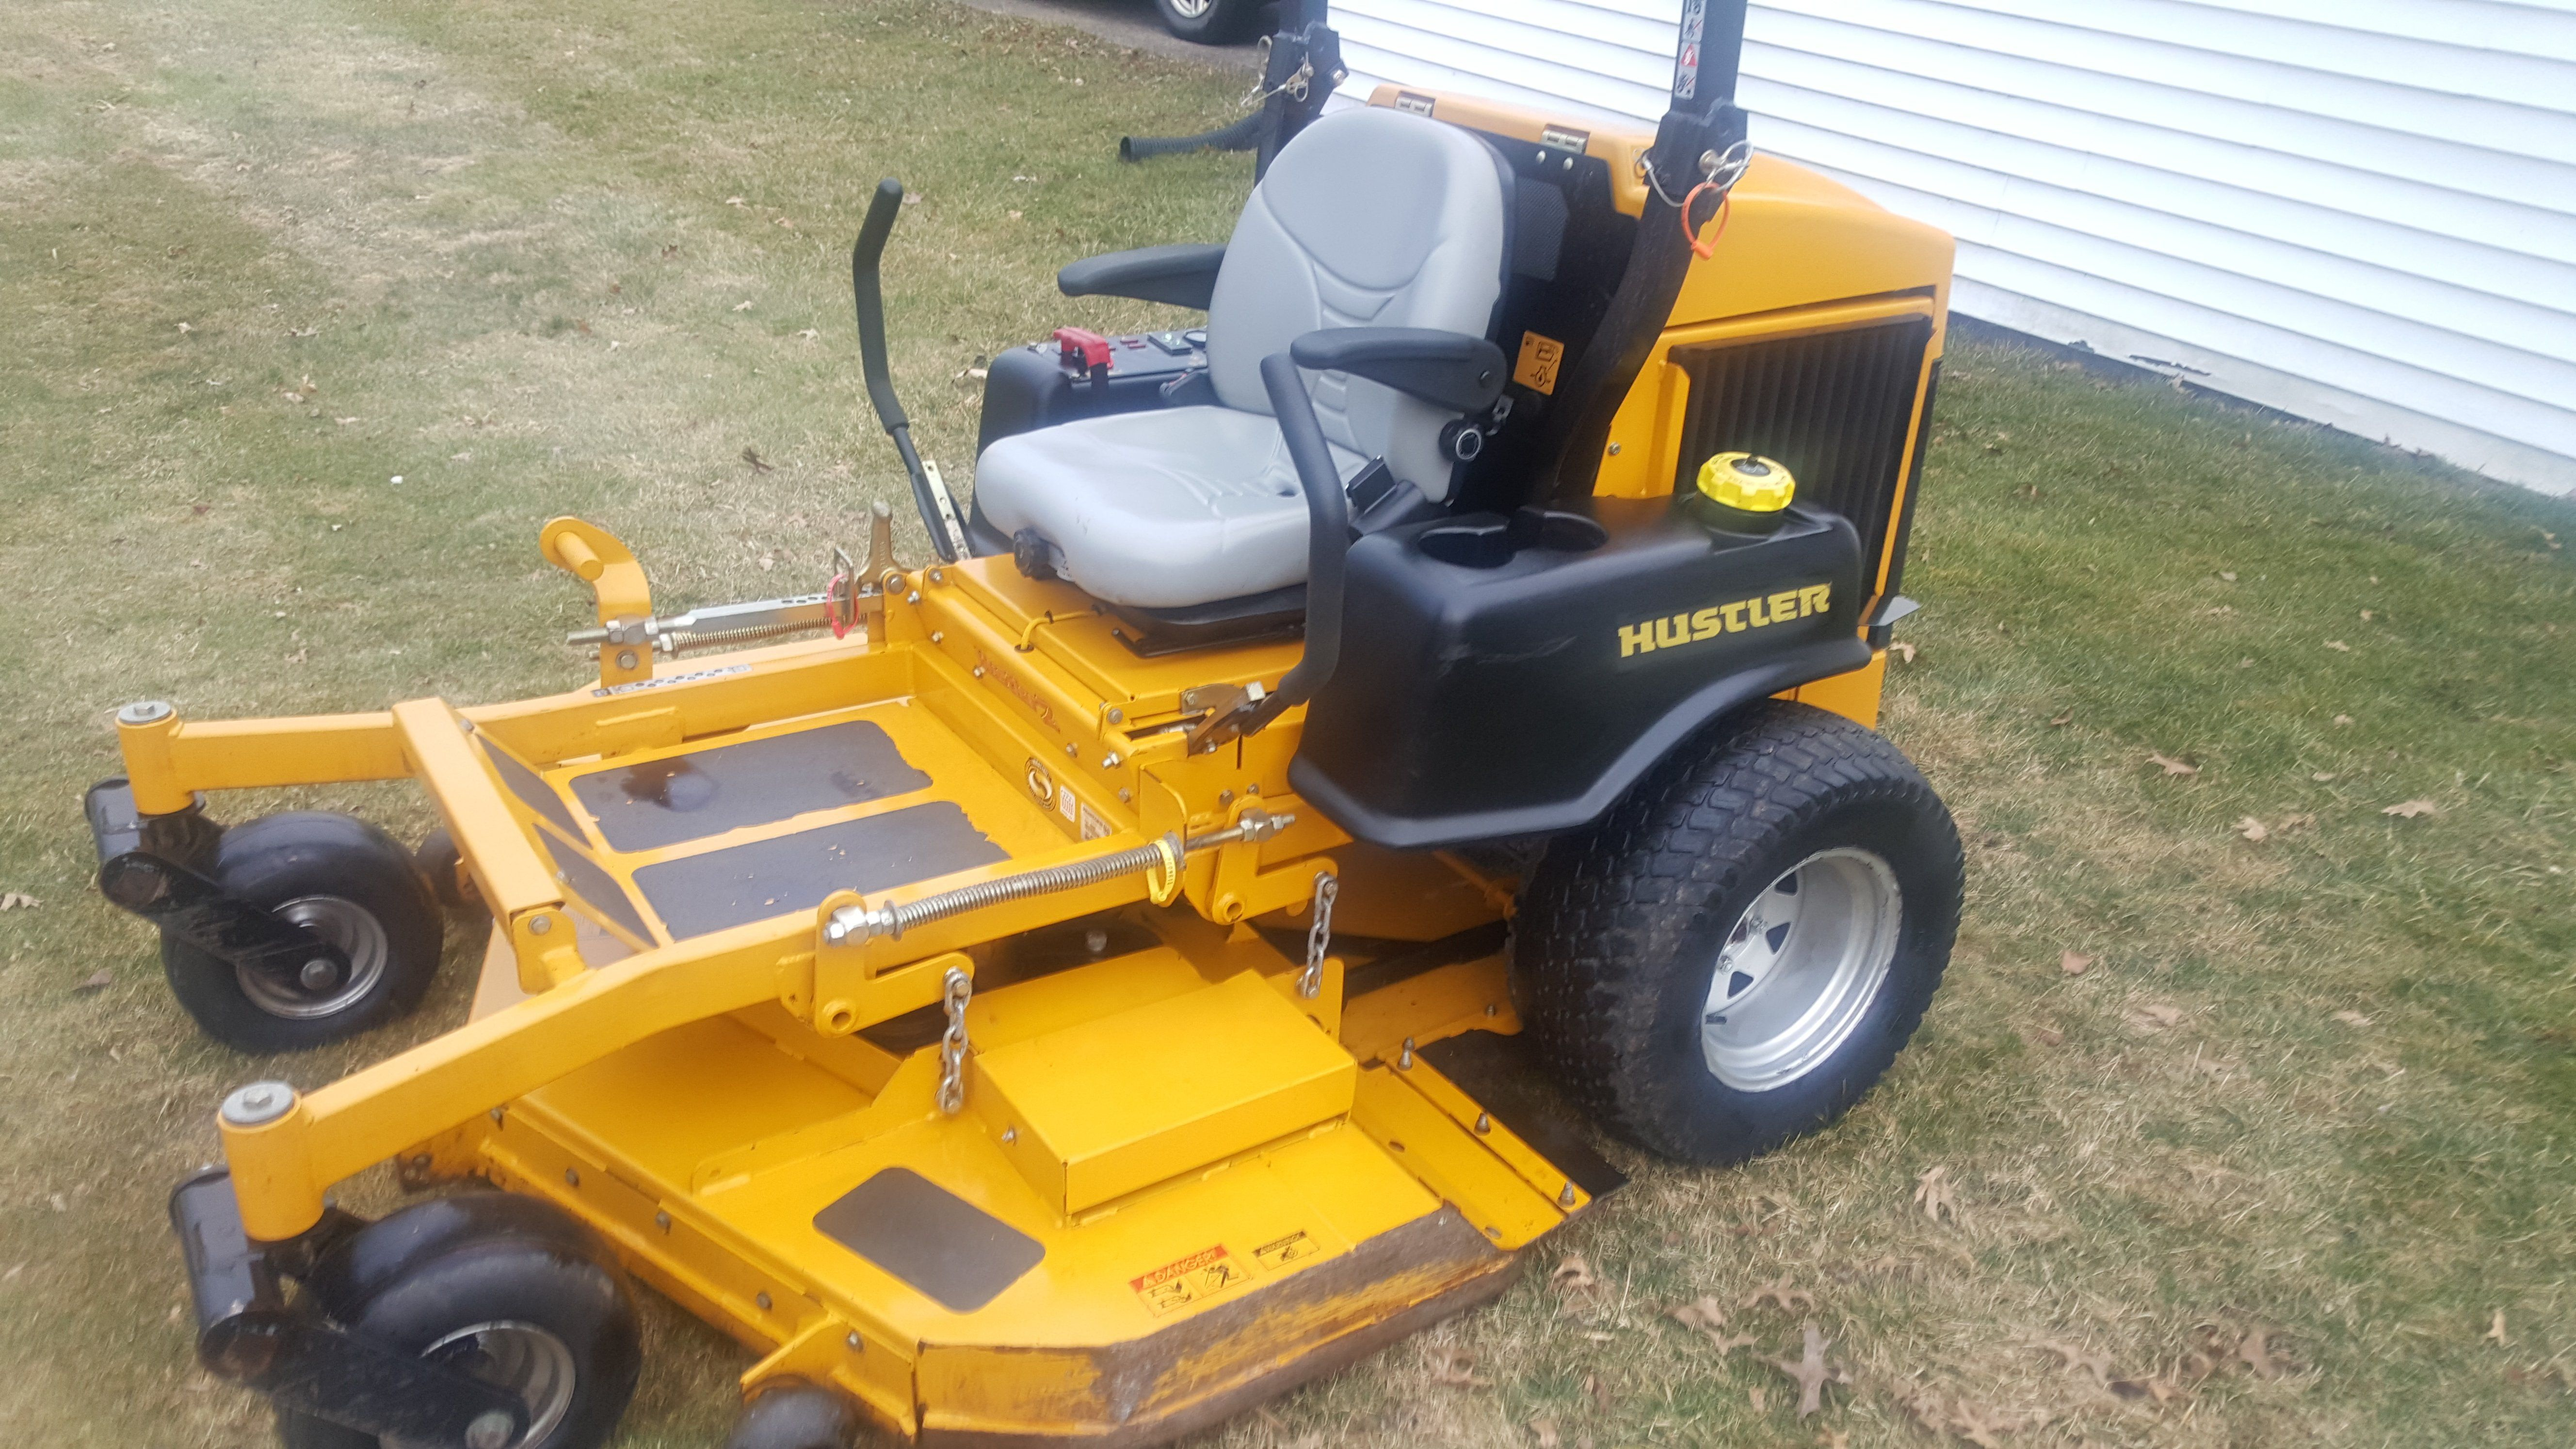 Killer F. reccomend Used hustler lawn mowers for sale